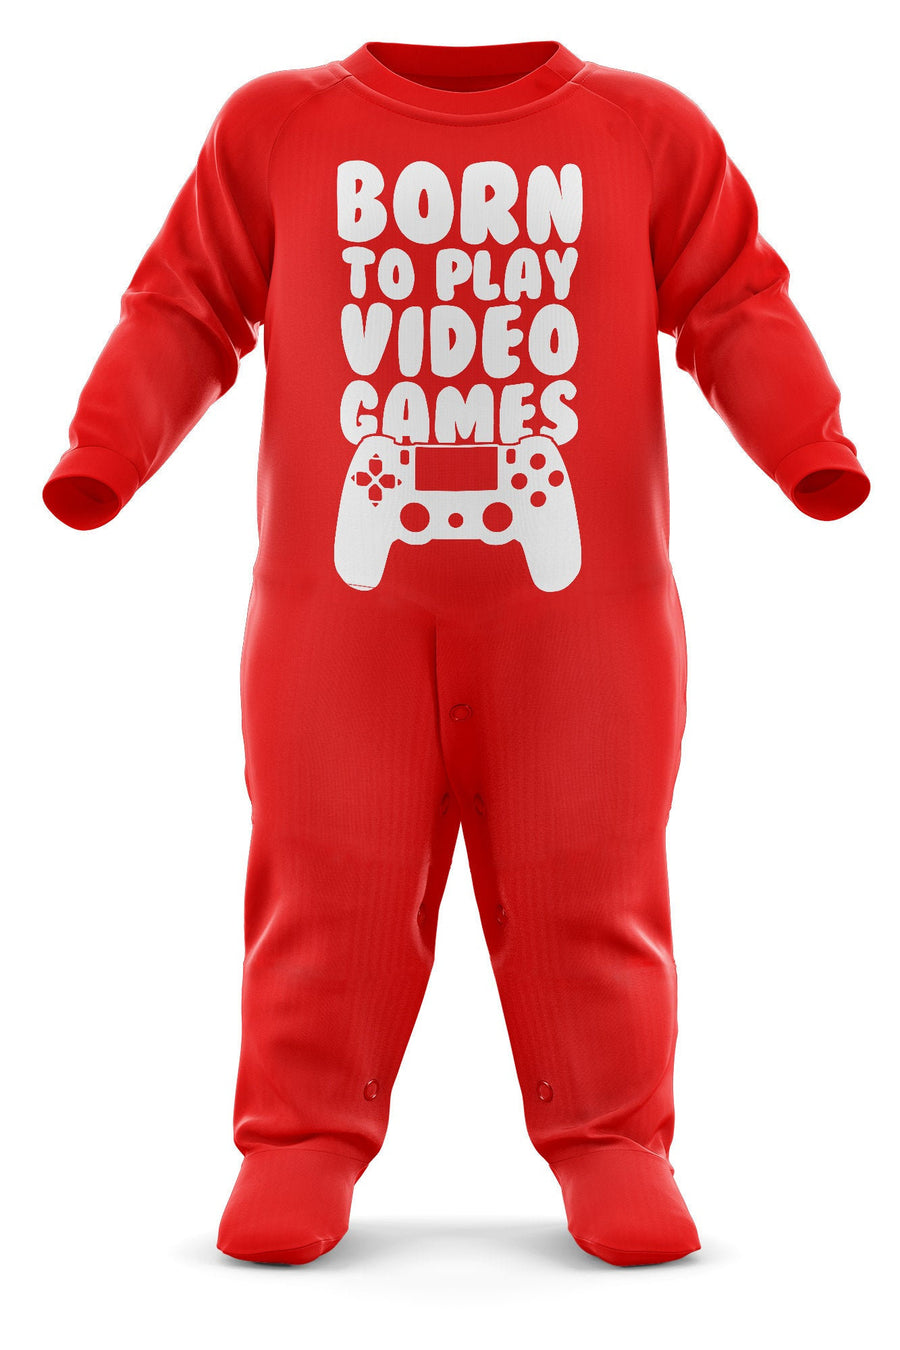 # Born To Play Video Games Babygrow - Video Games Baby Romper Suit - Babies Video Game Christmas Gift - Birthday Present - Newborn Romper